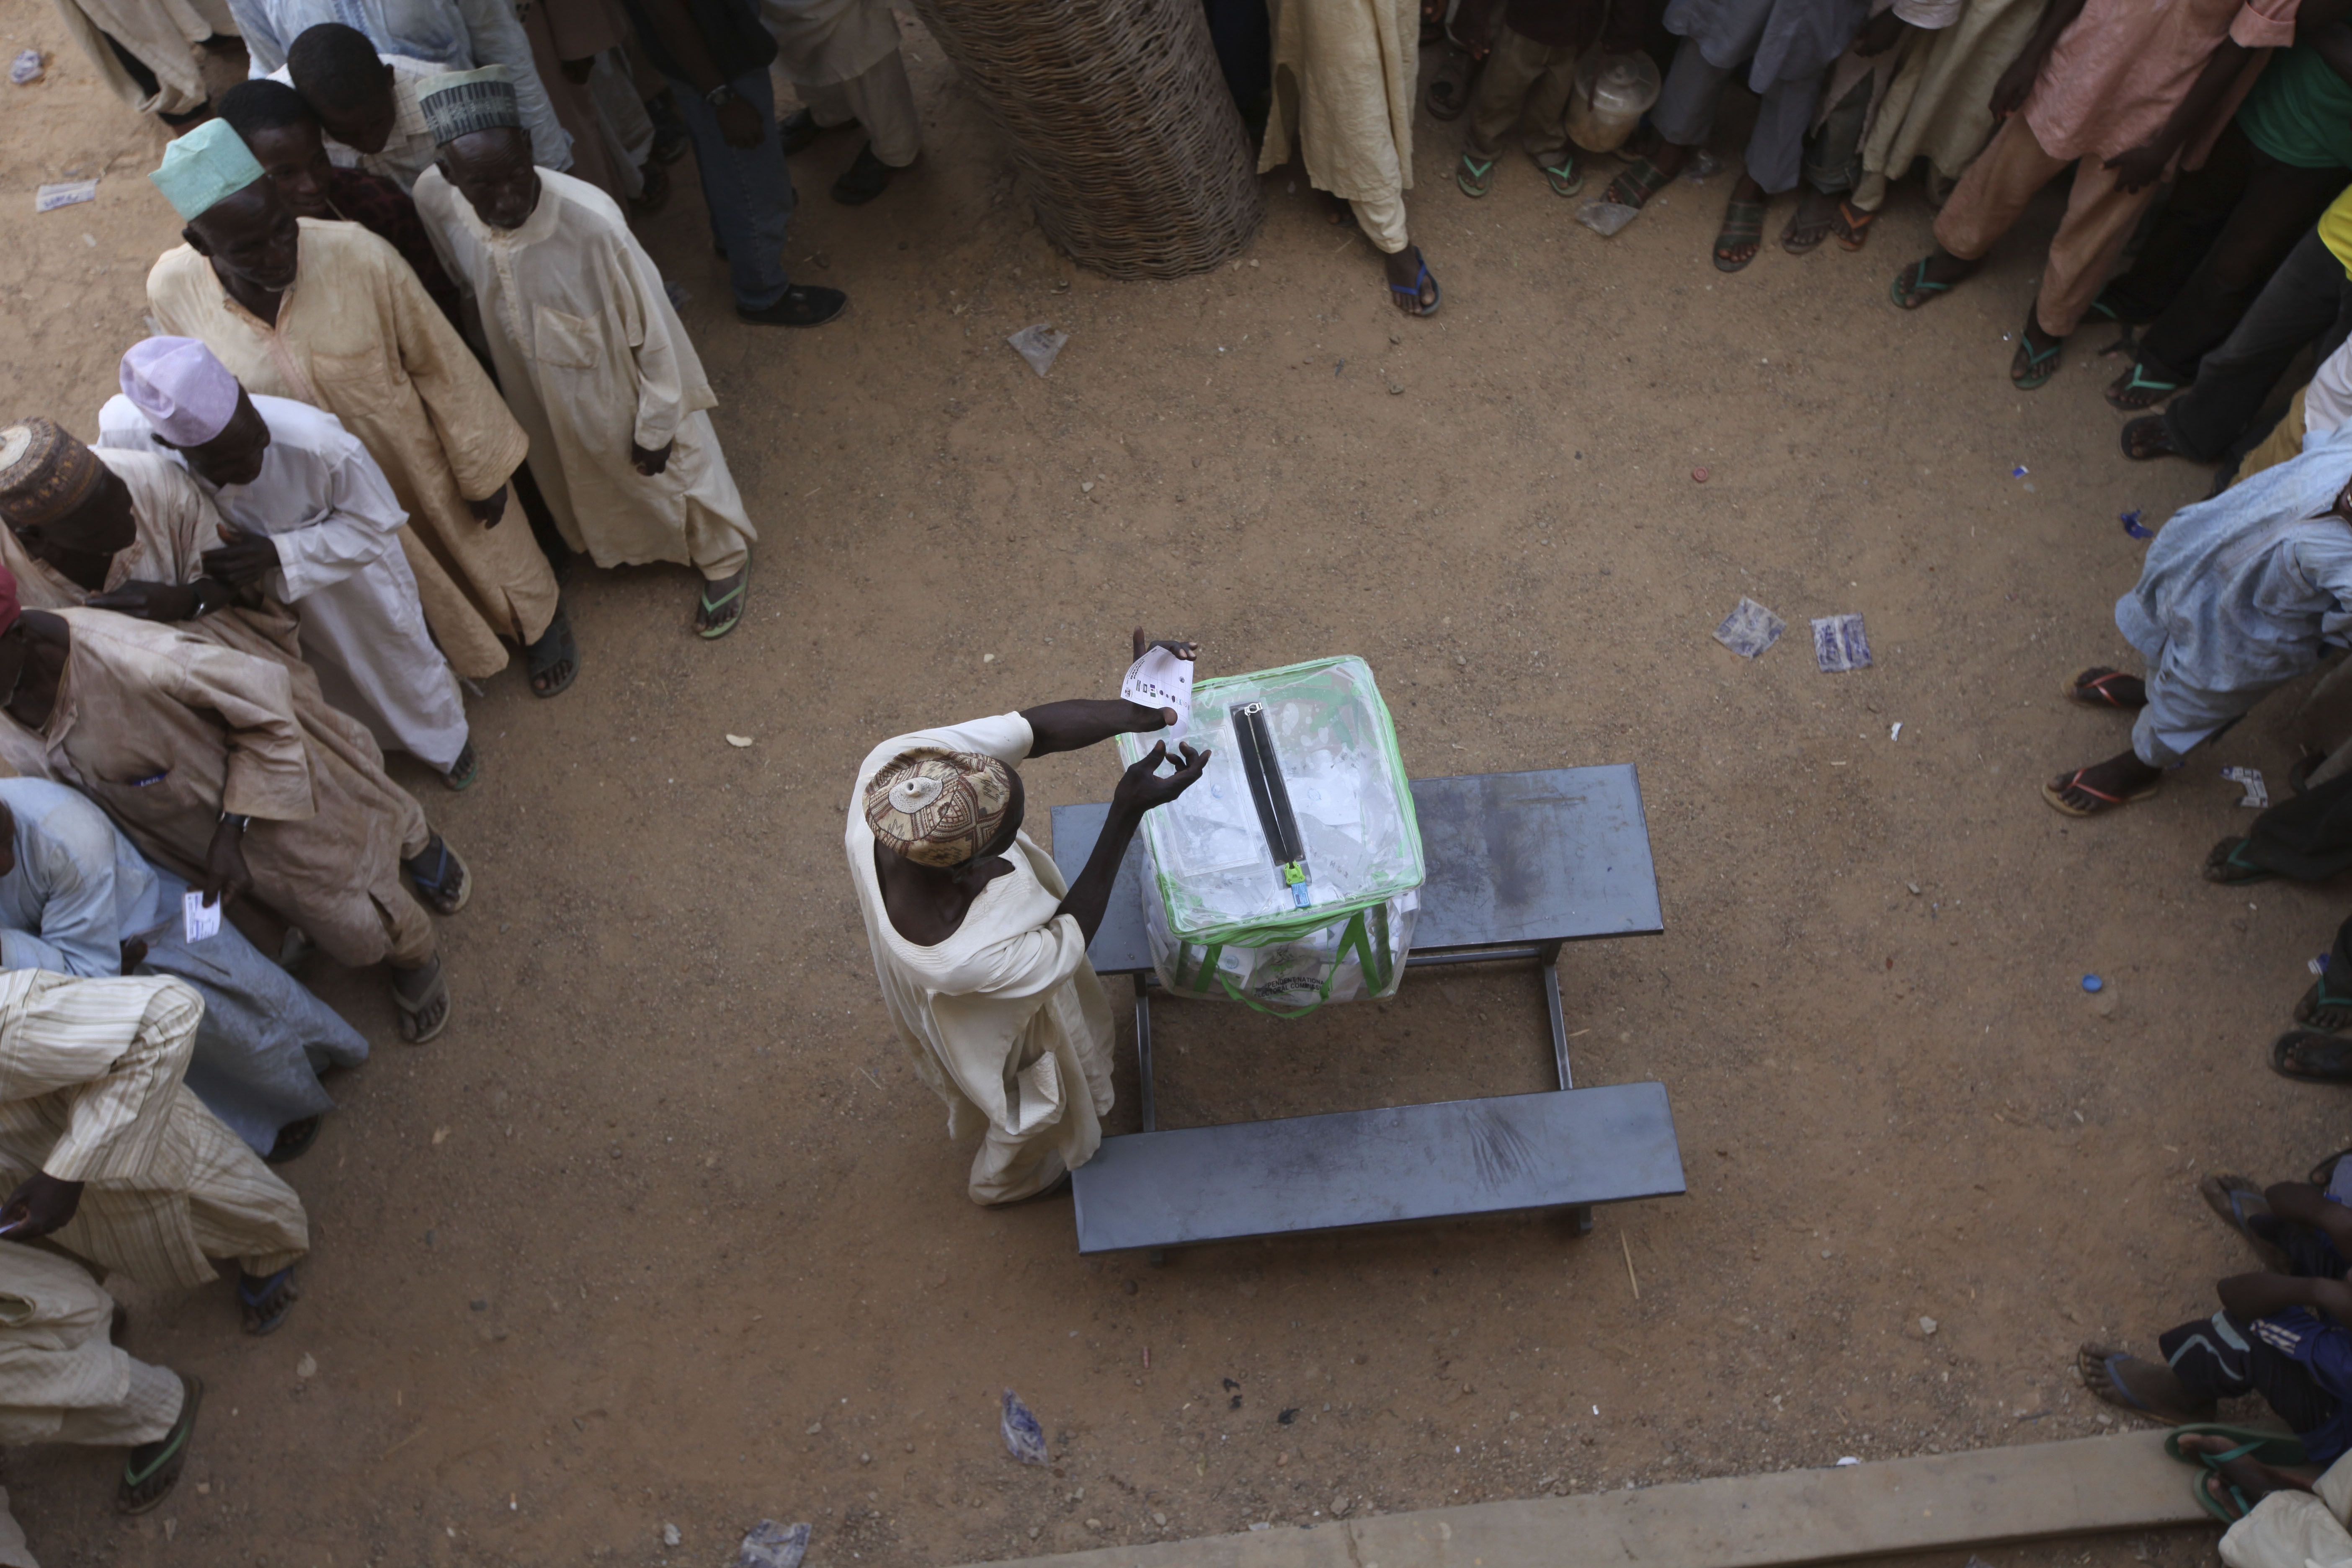 A man casts his vote during the presidential elections in Mashi, Nigeria